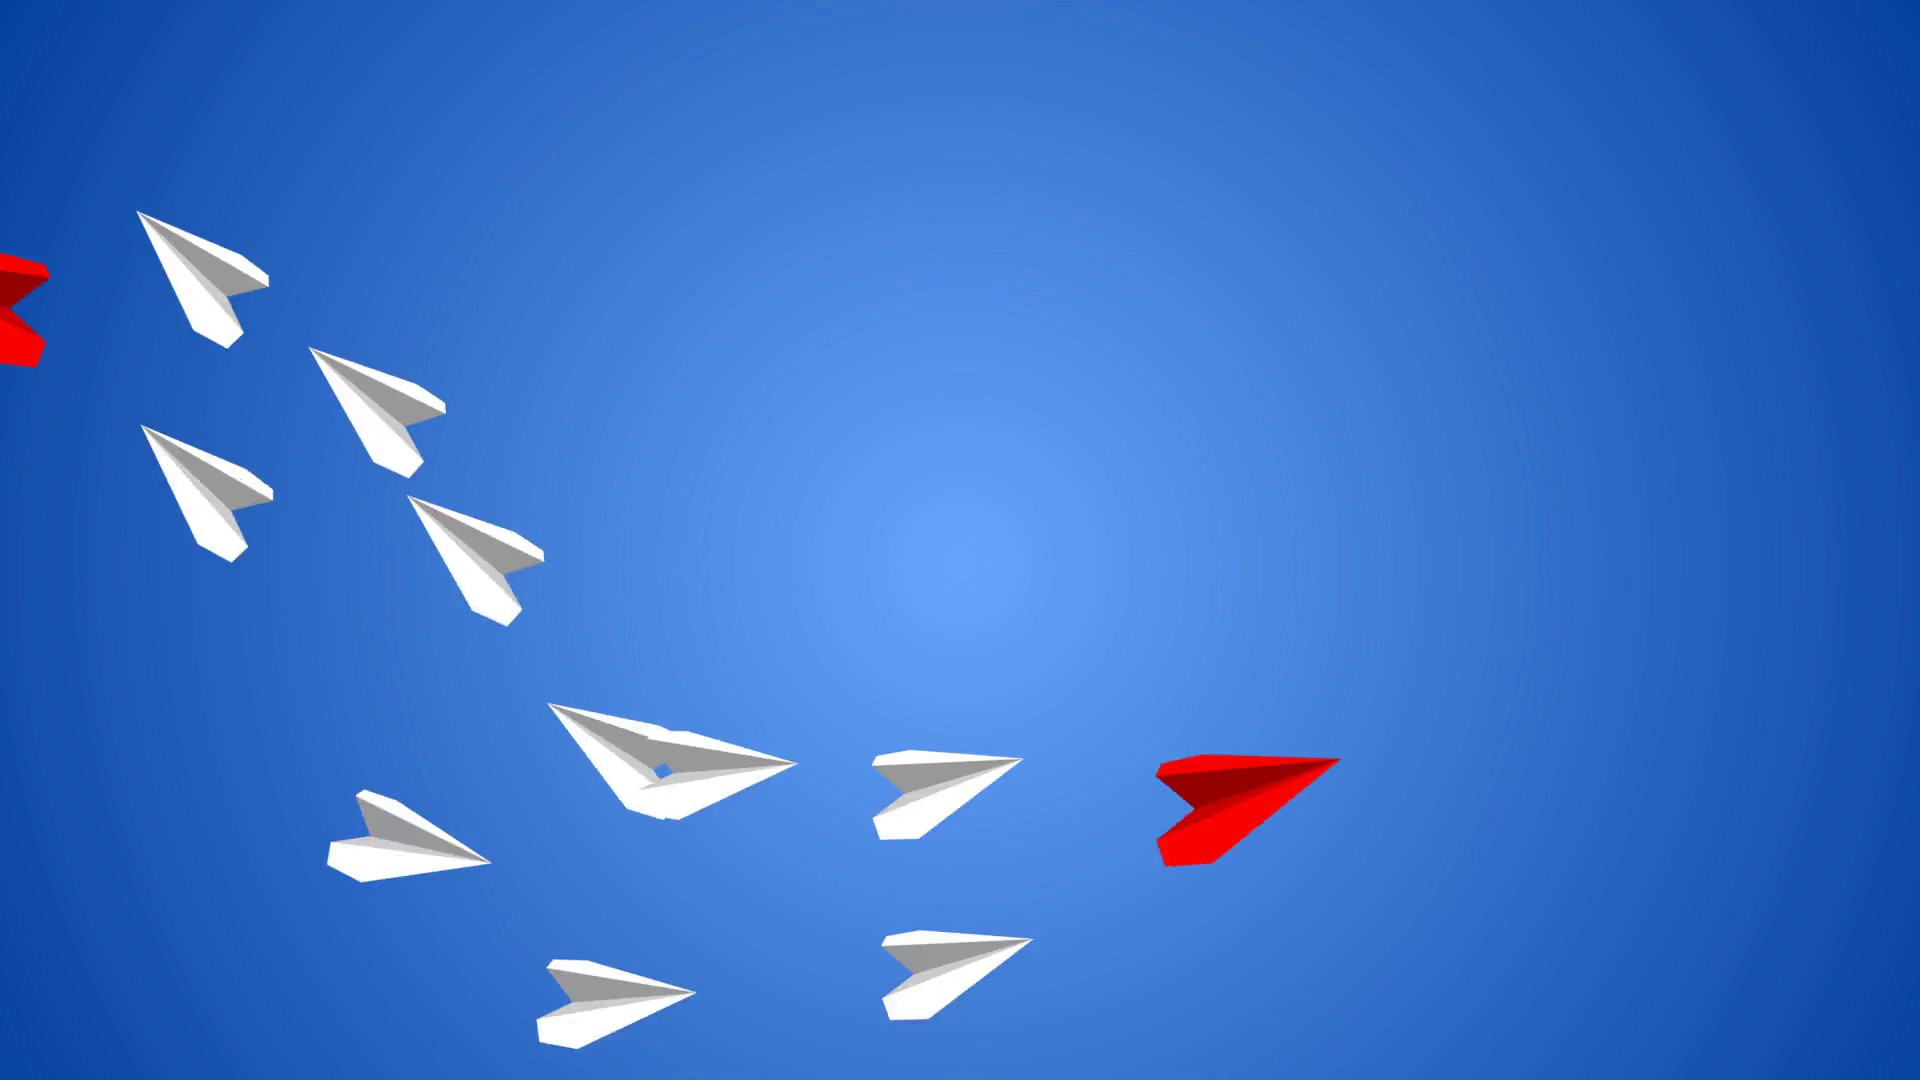 Paper Airplane free background